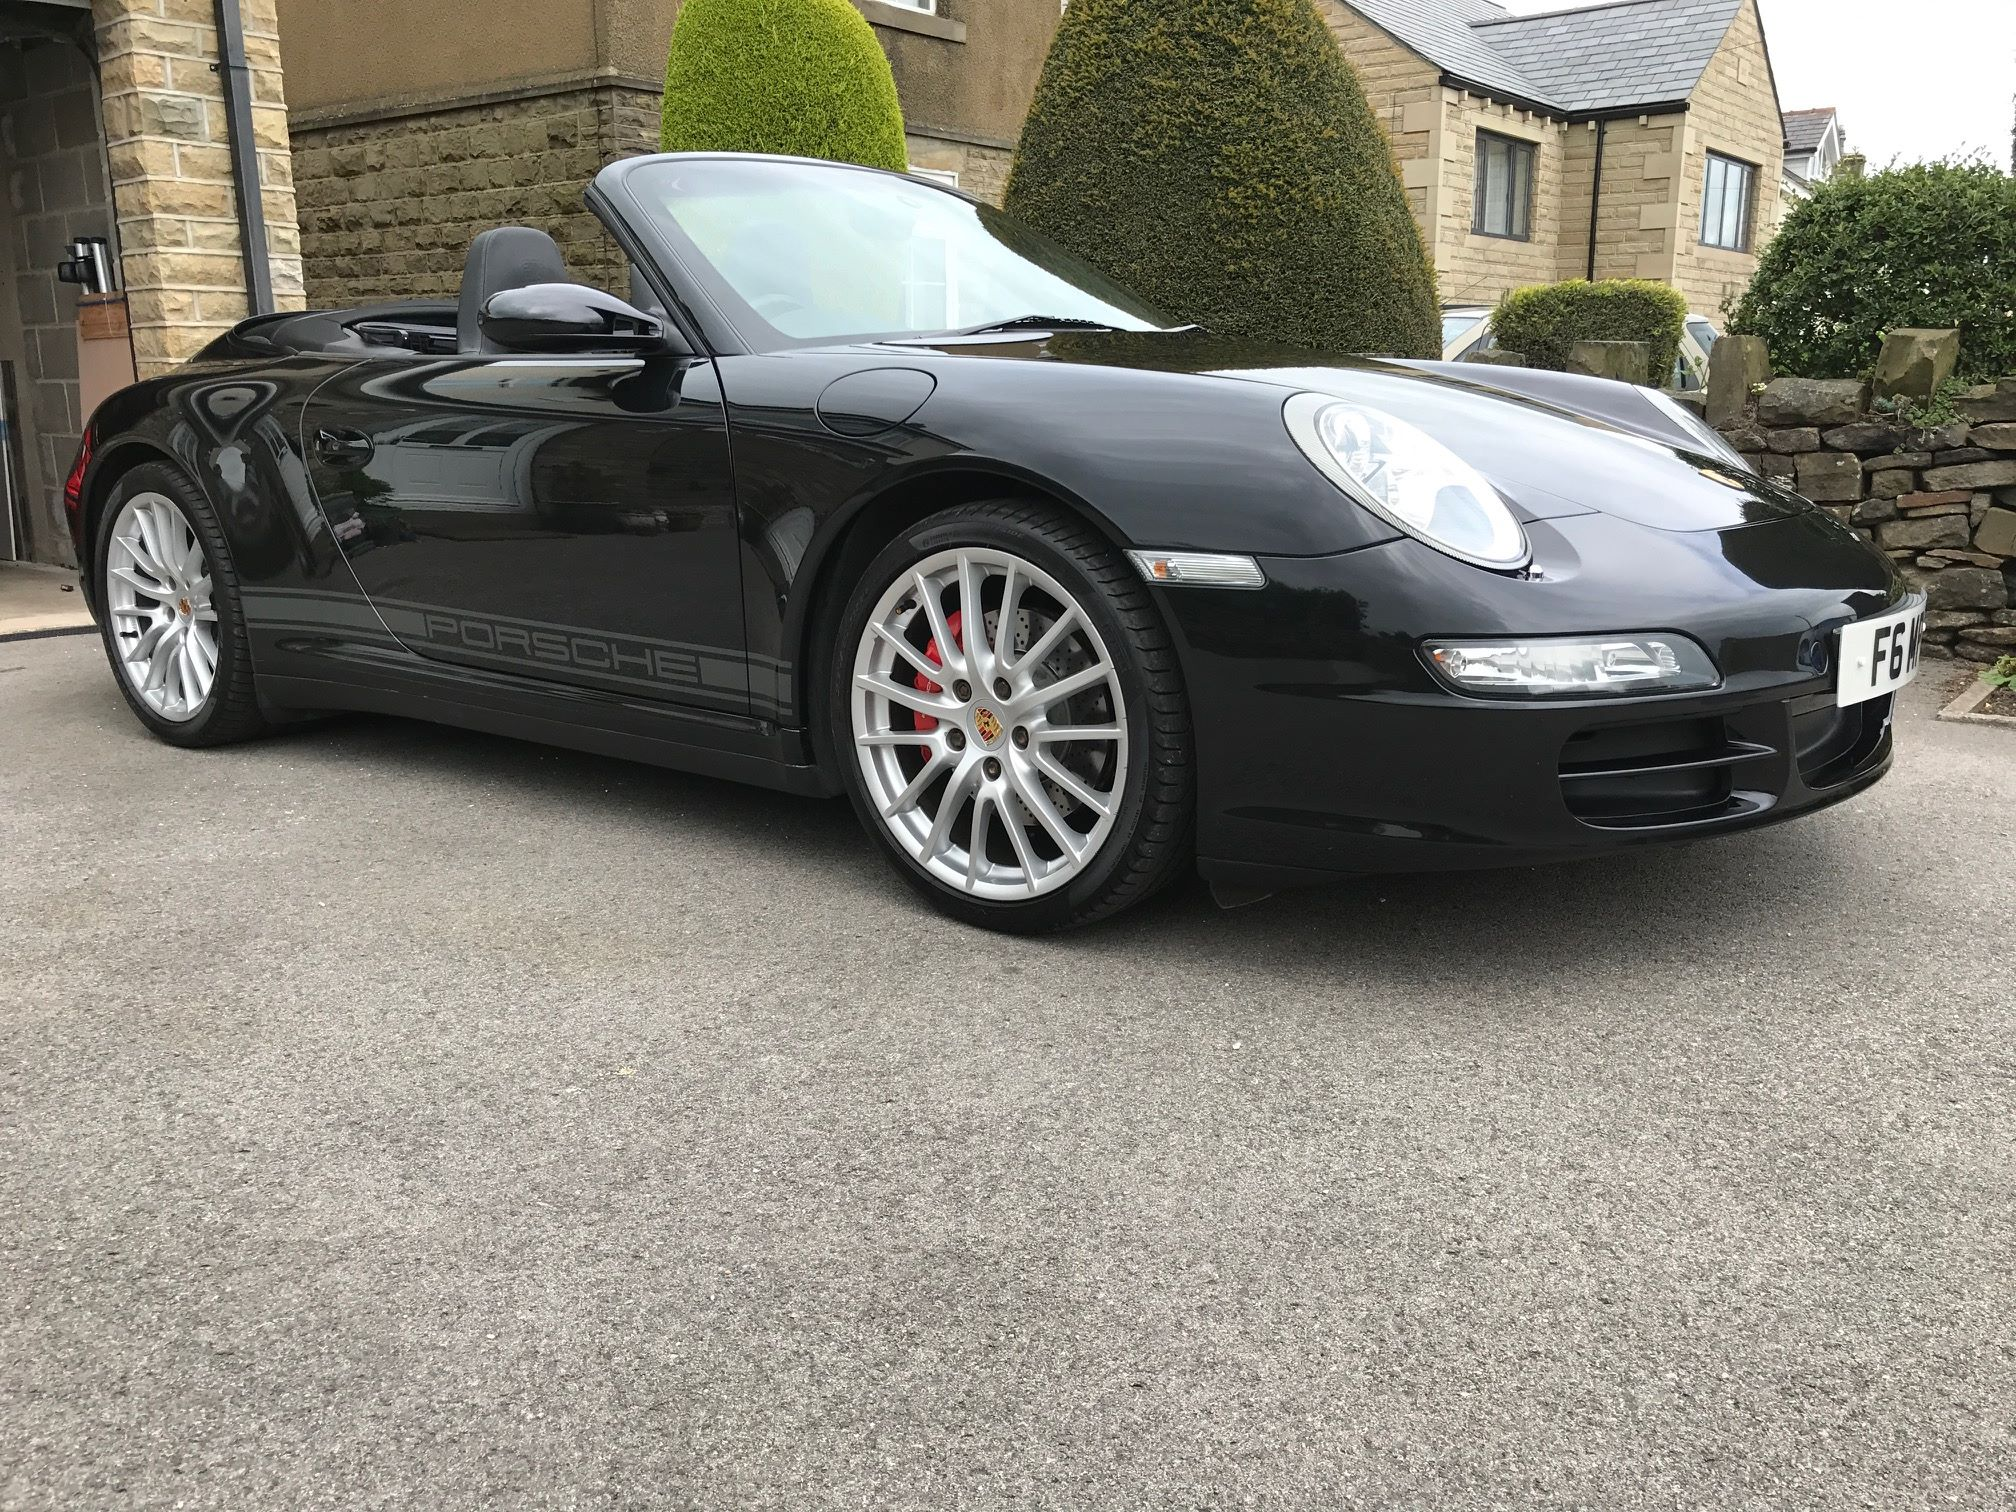 Porsche Graphics Fitted To 997 Cab